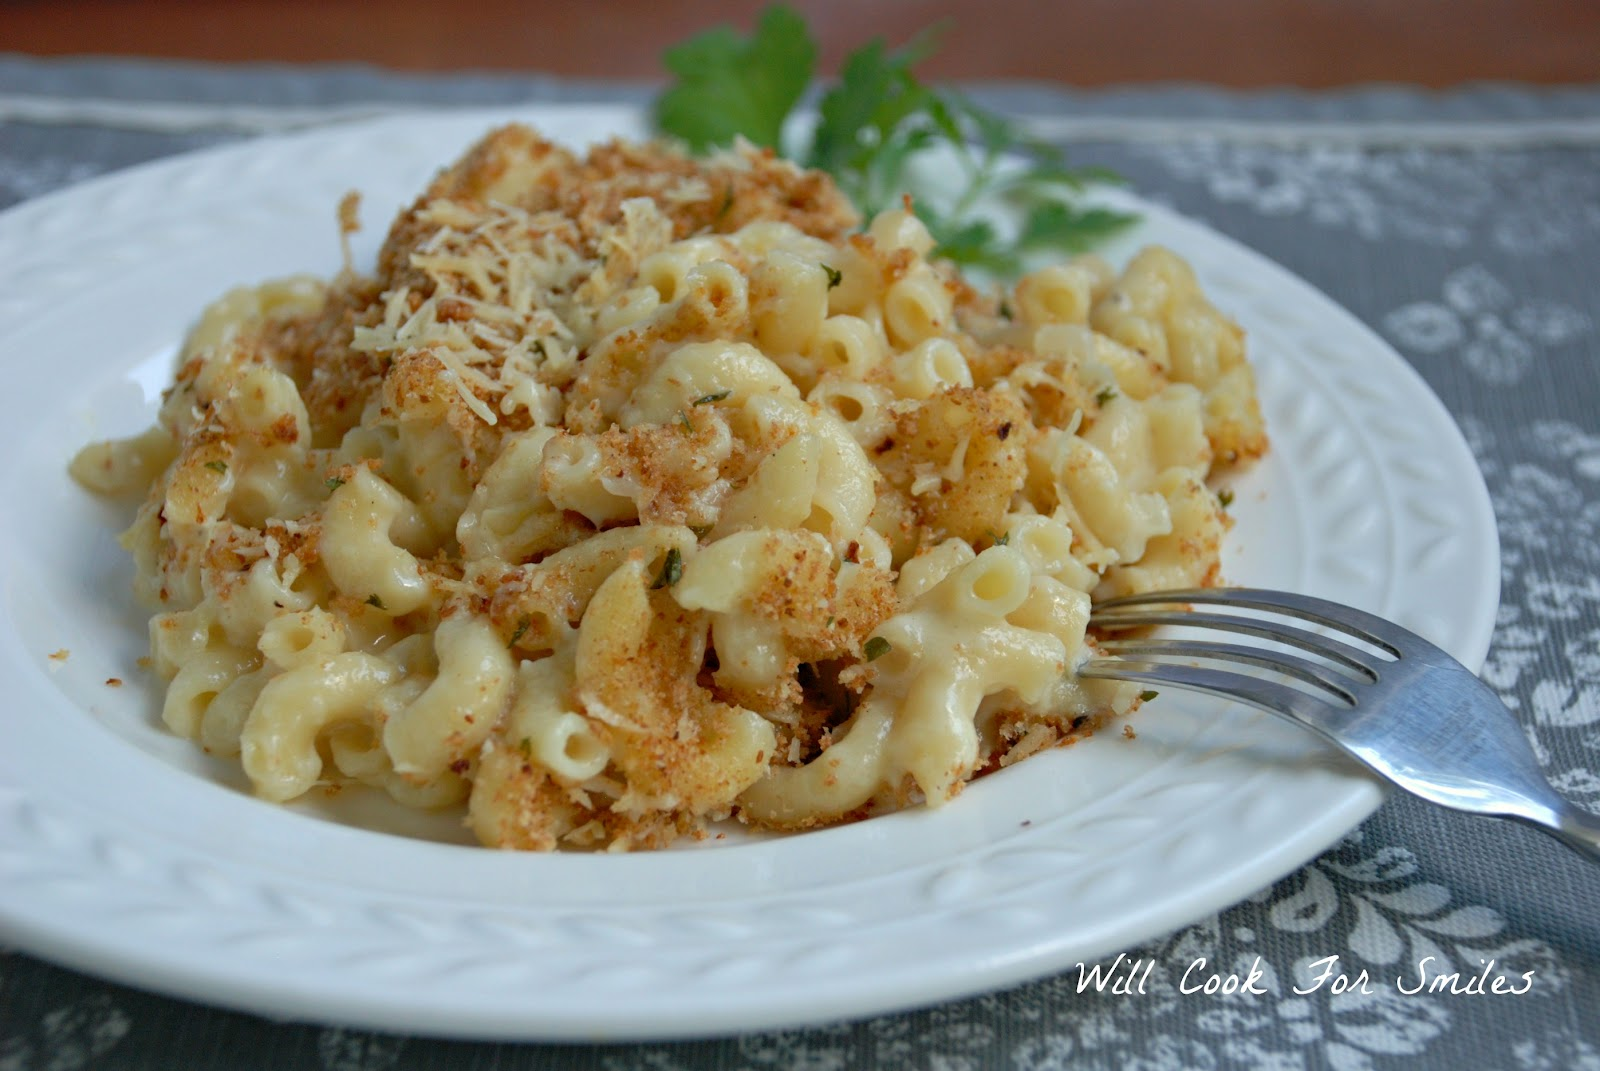 Light White Baked Mac-n-Cheese - Inspired by Familia